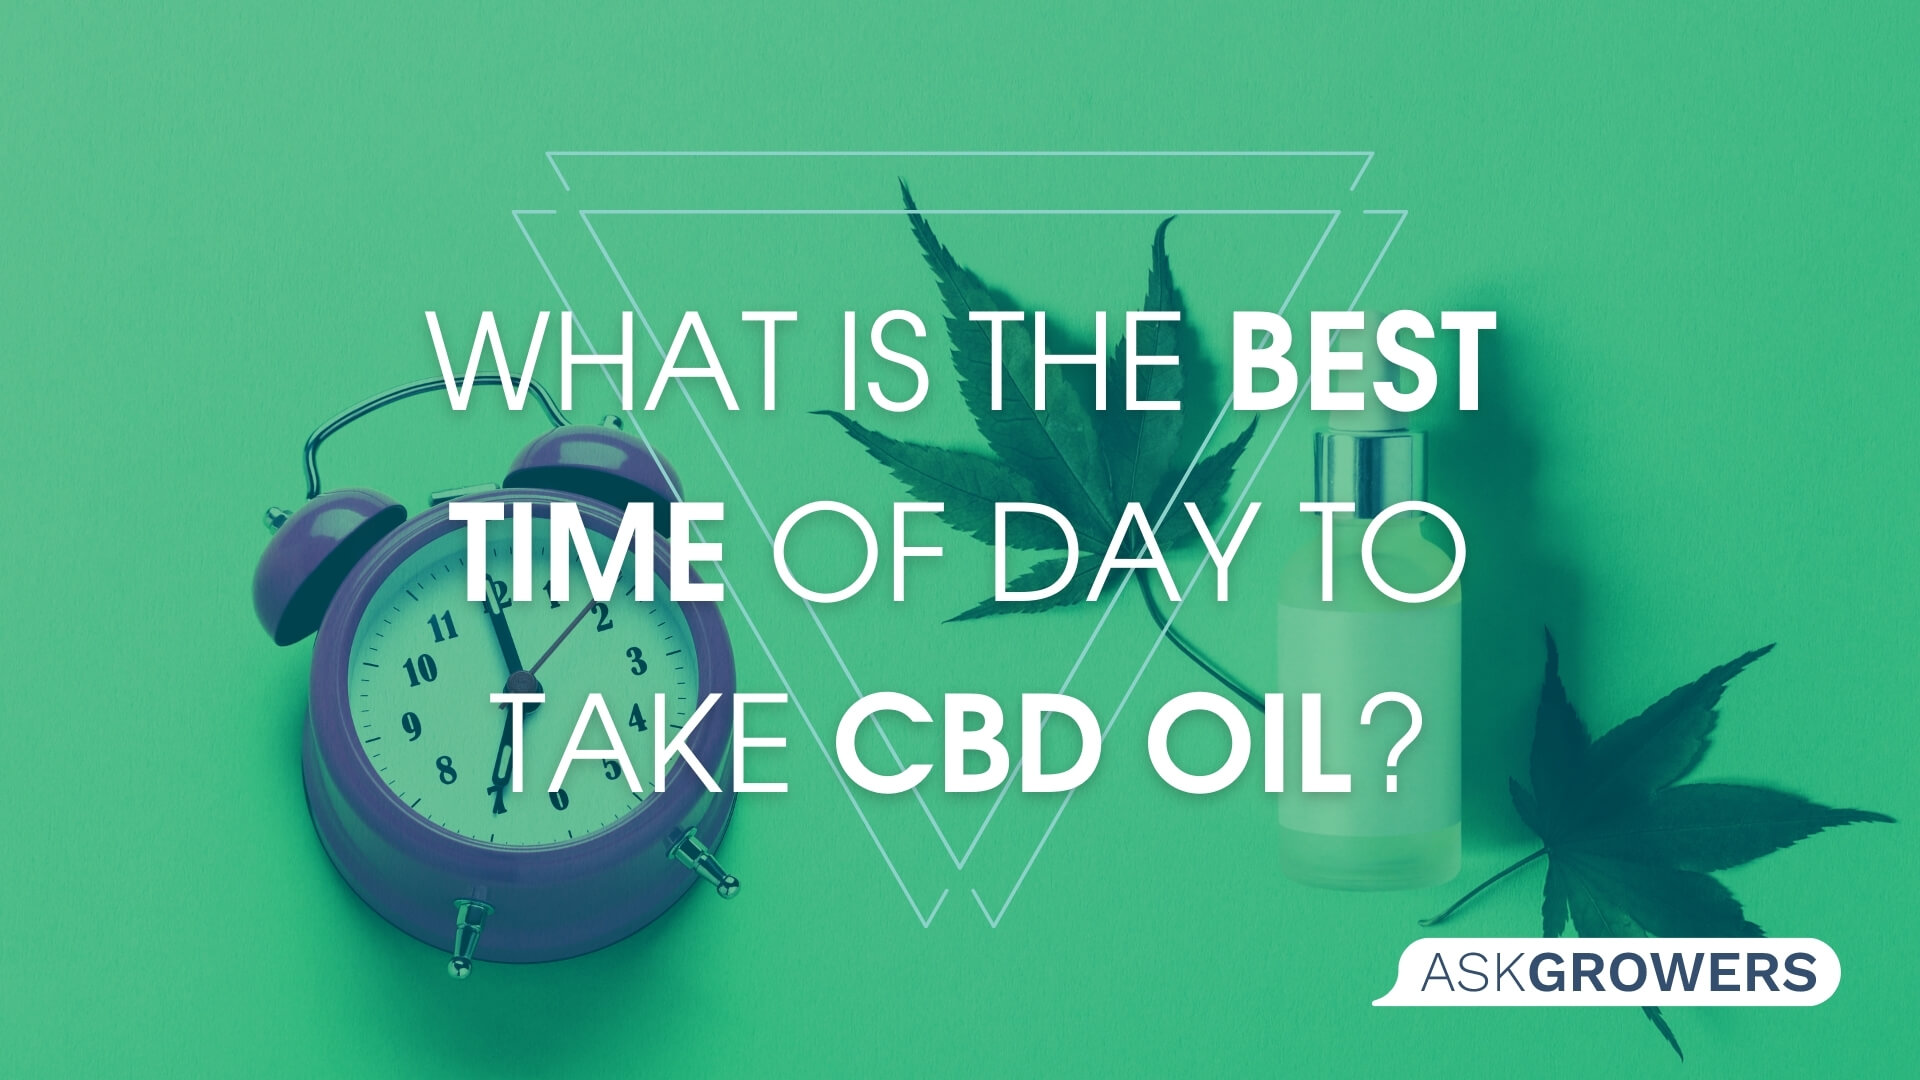 What Is the Best Time of Day to Take CBD Oil?, AskGrowers